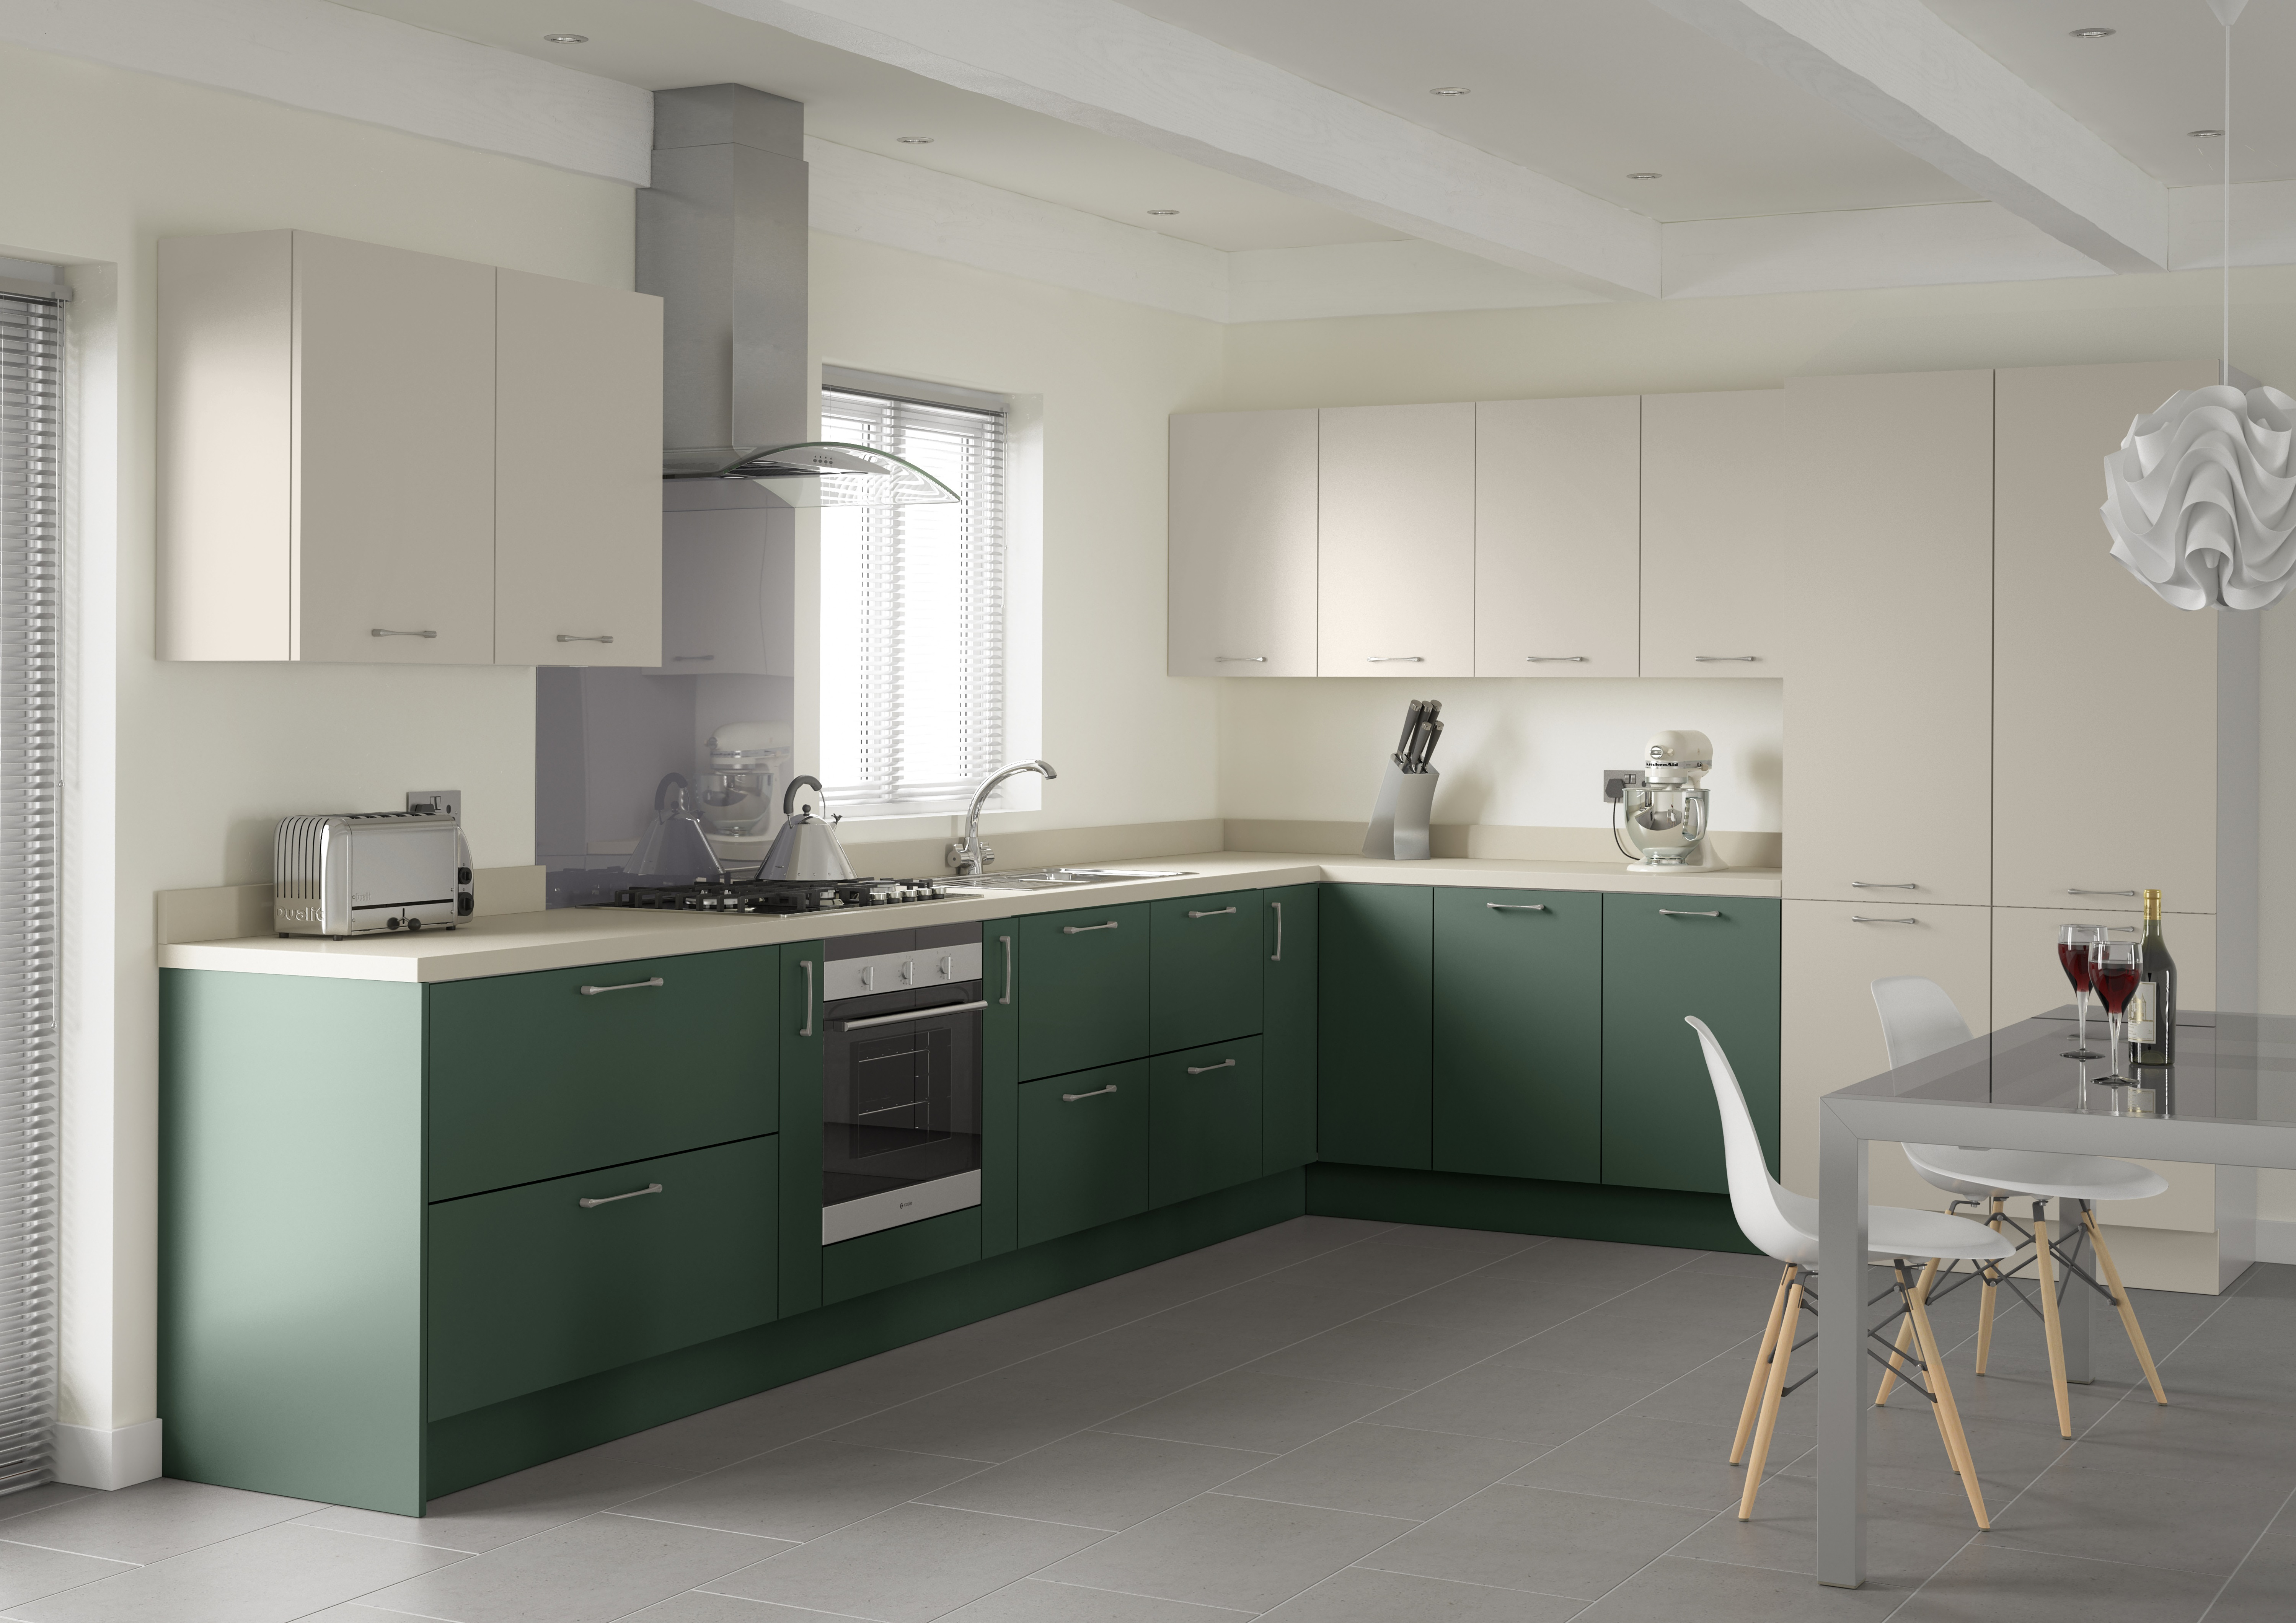 Cashmere slab and labrador green slab. starting at £5,000, from the Profile Collection at Trend Interiors, www.trendinteriors.co.uk